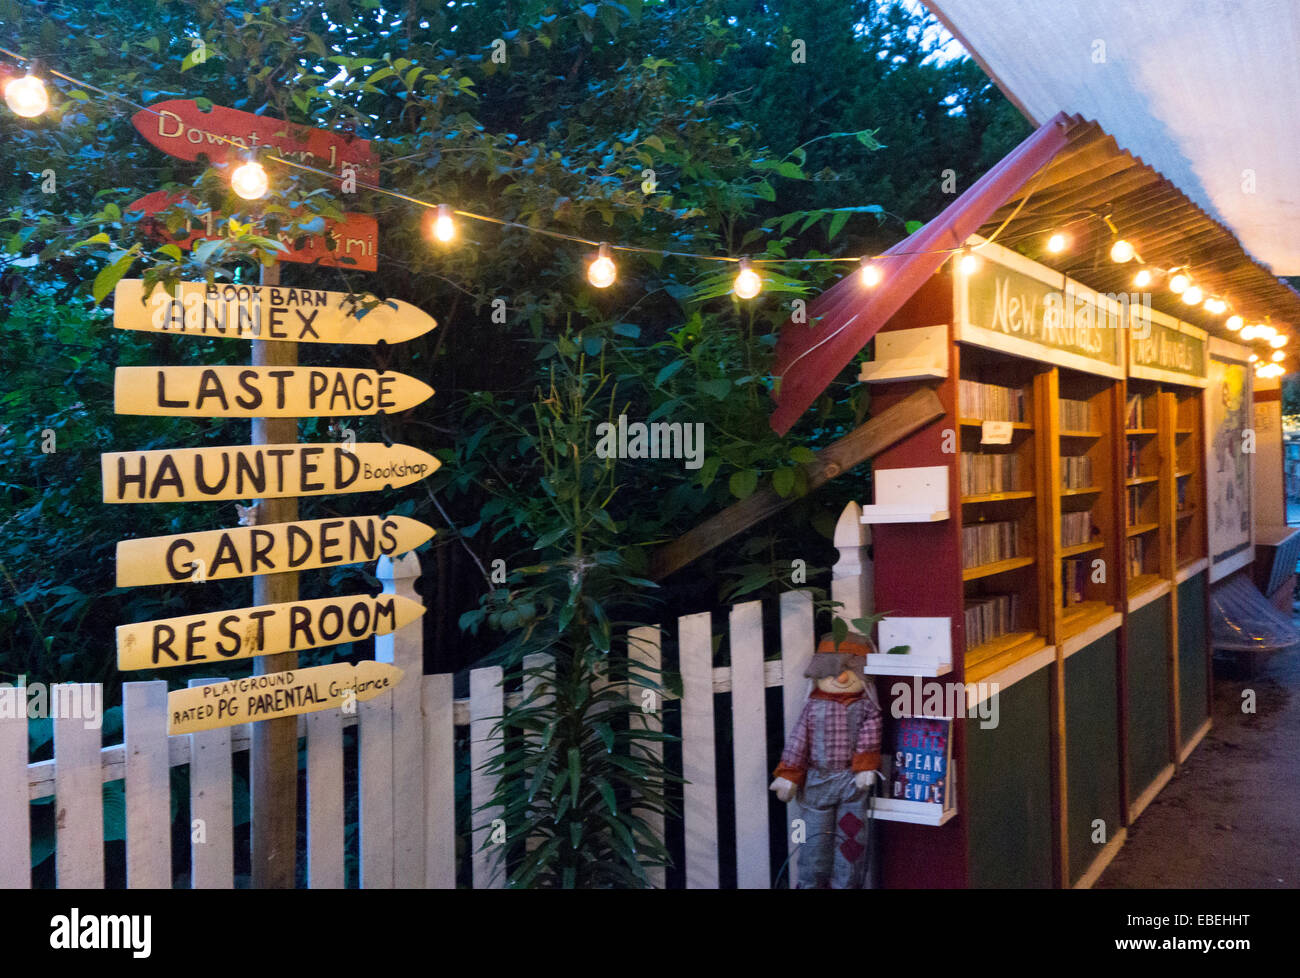 Book Barn In Niantic Ct Stock Photo Royalty Free Image